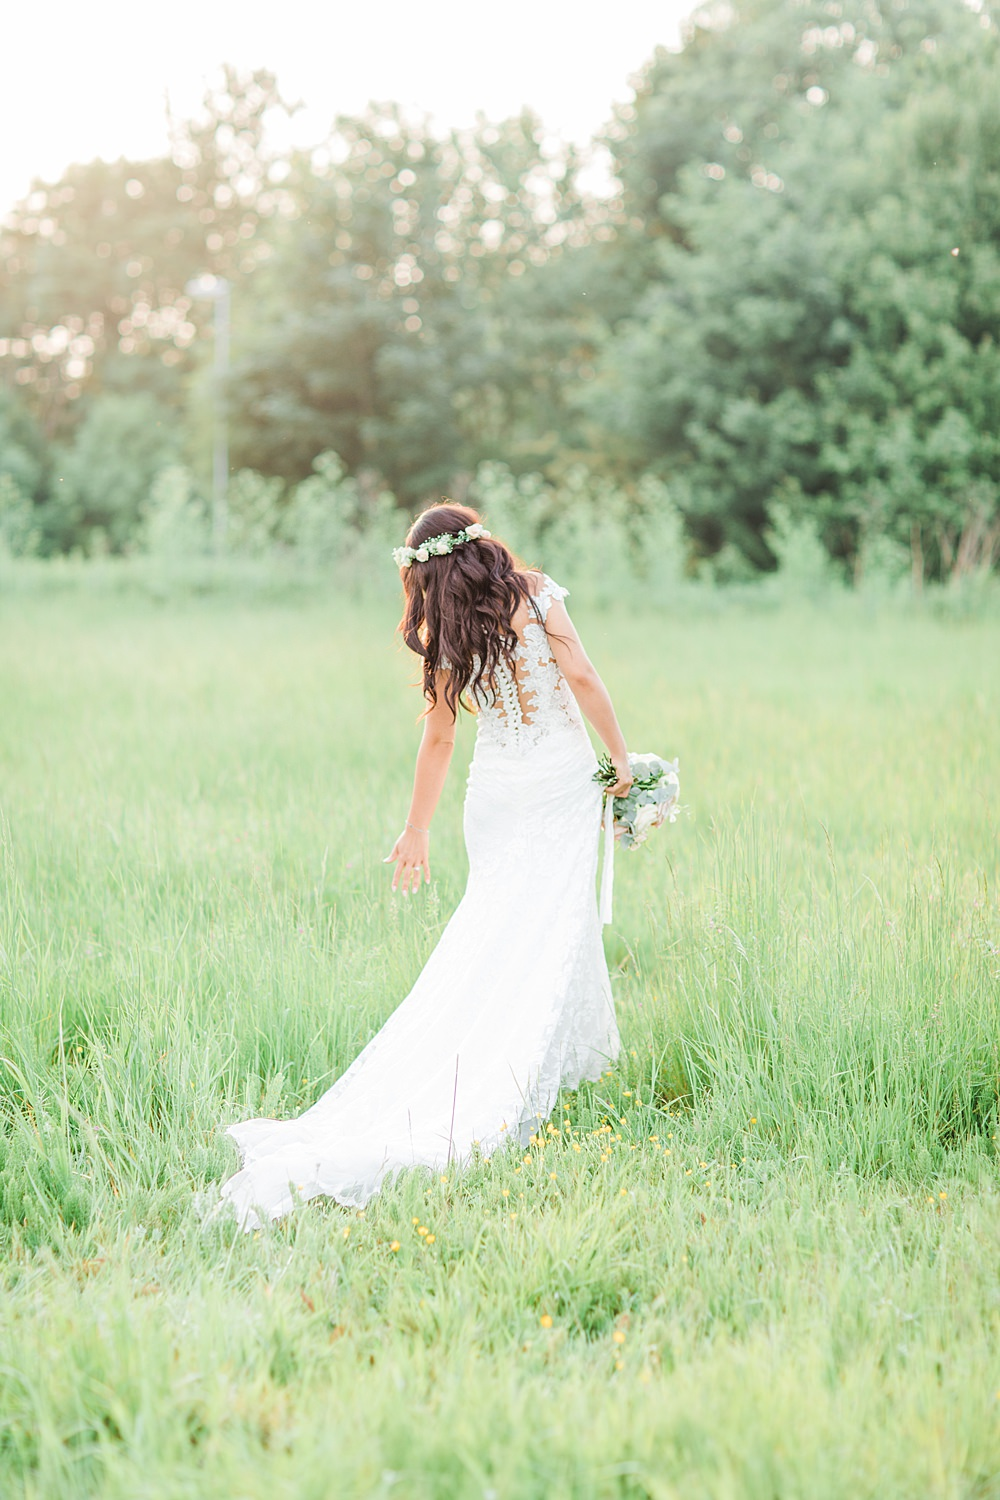 Bride Bridal Dress Gown Lace Fishtail Fit and Flare Illusion Sheene Mill Wedding Terri & Lori Photography and Film Studio